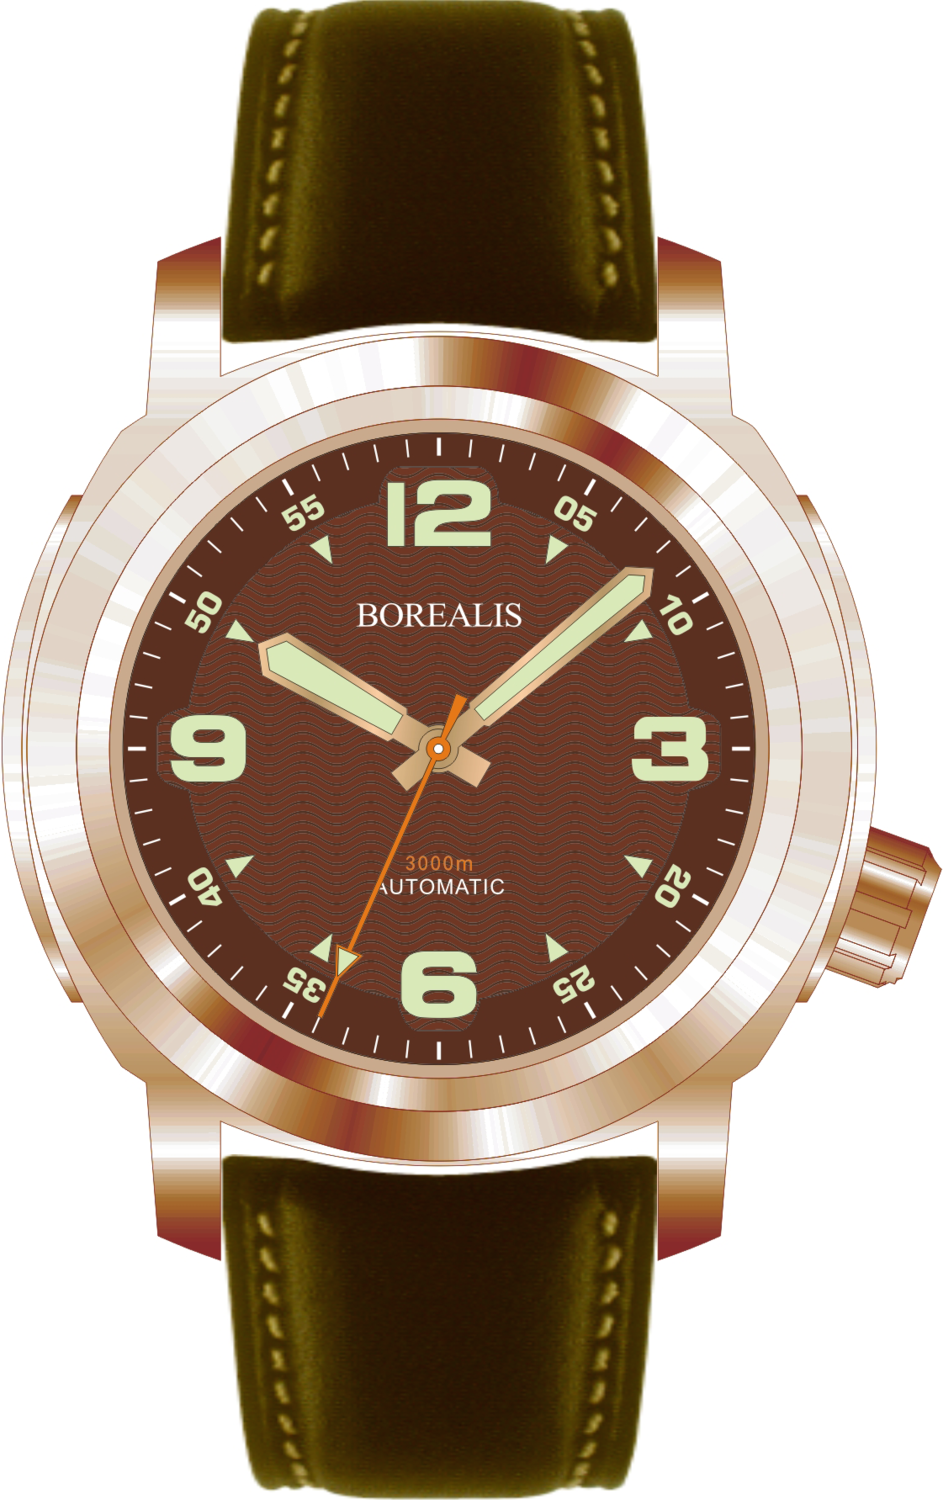 Borealis Batial Bronze CuSn8 Brown 3000m Miyota 9015 Automatic Diver Watch No Date Display